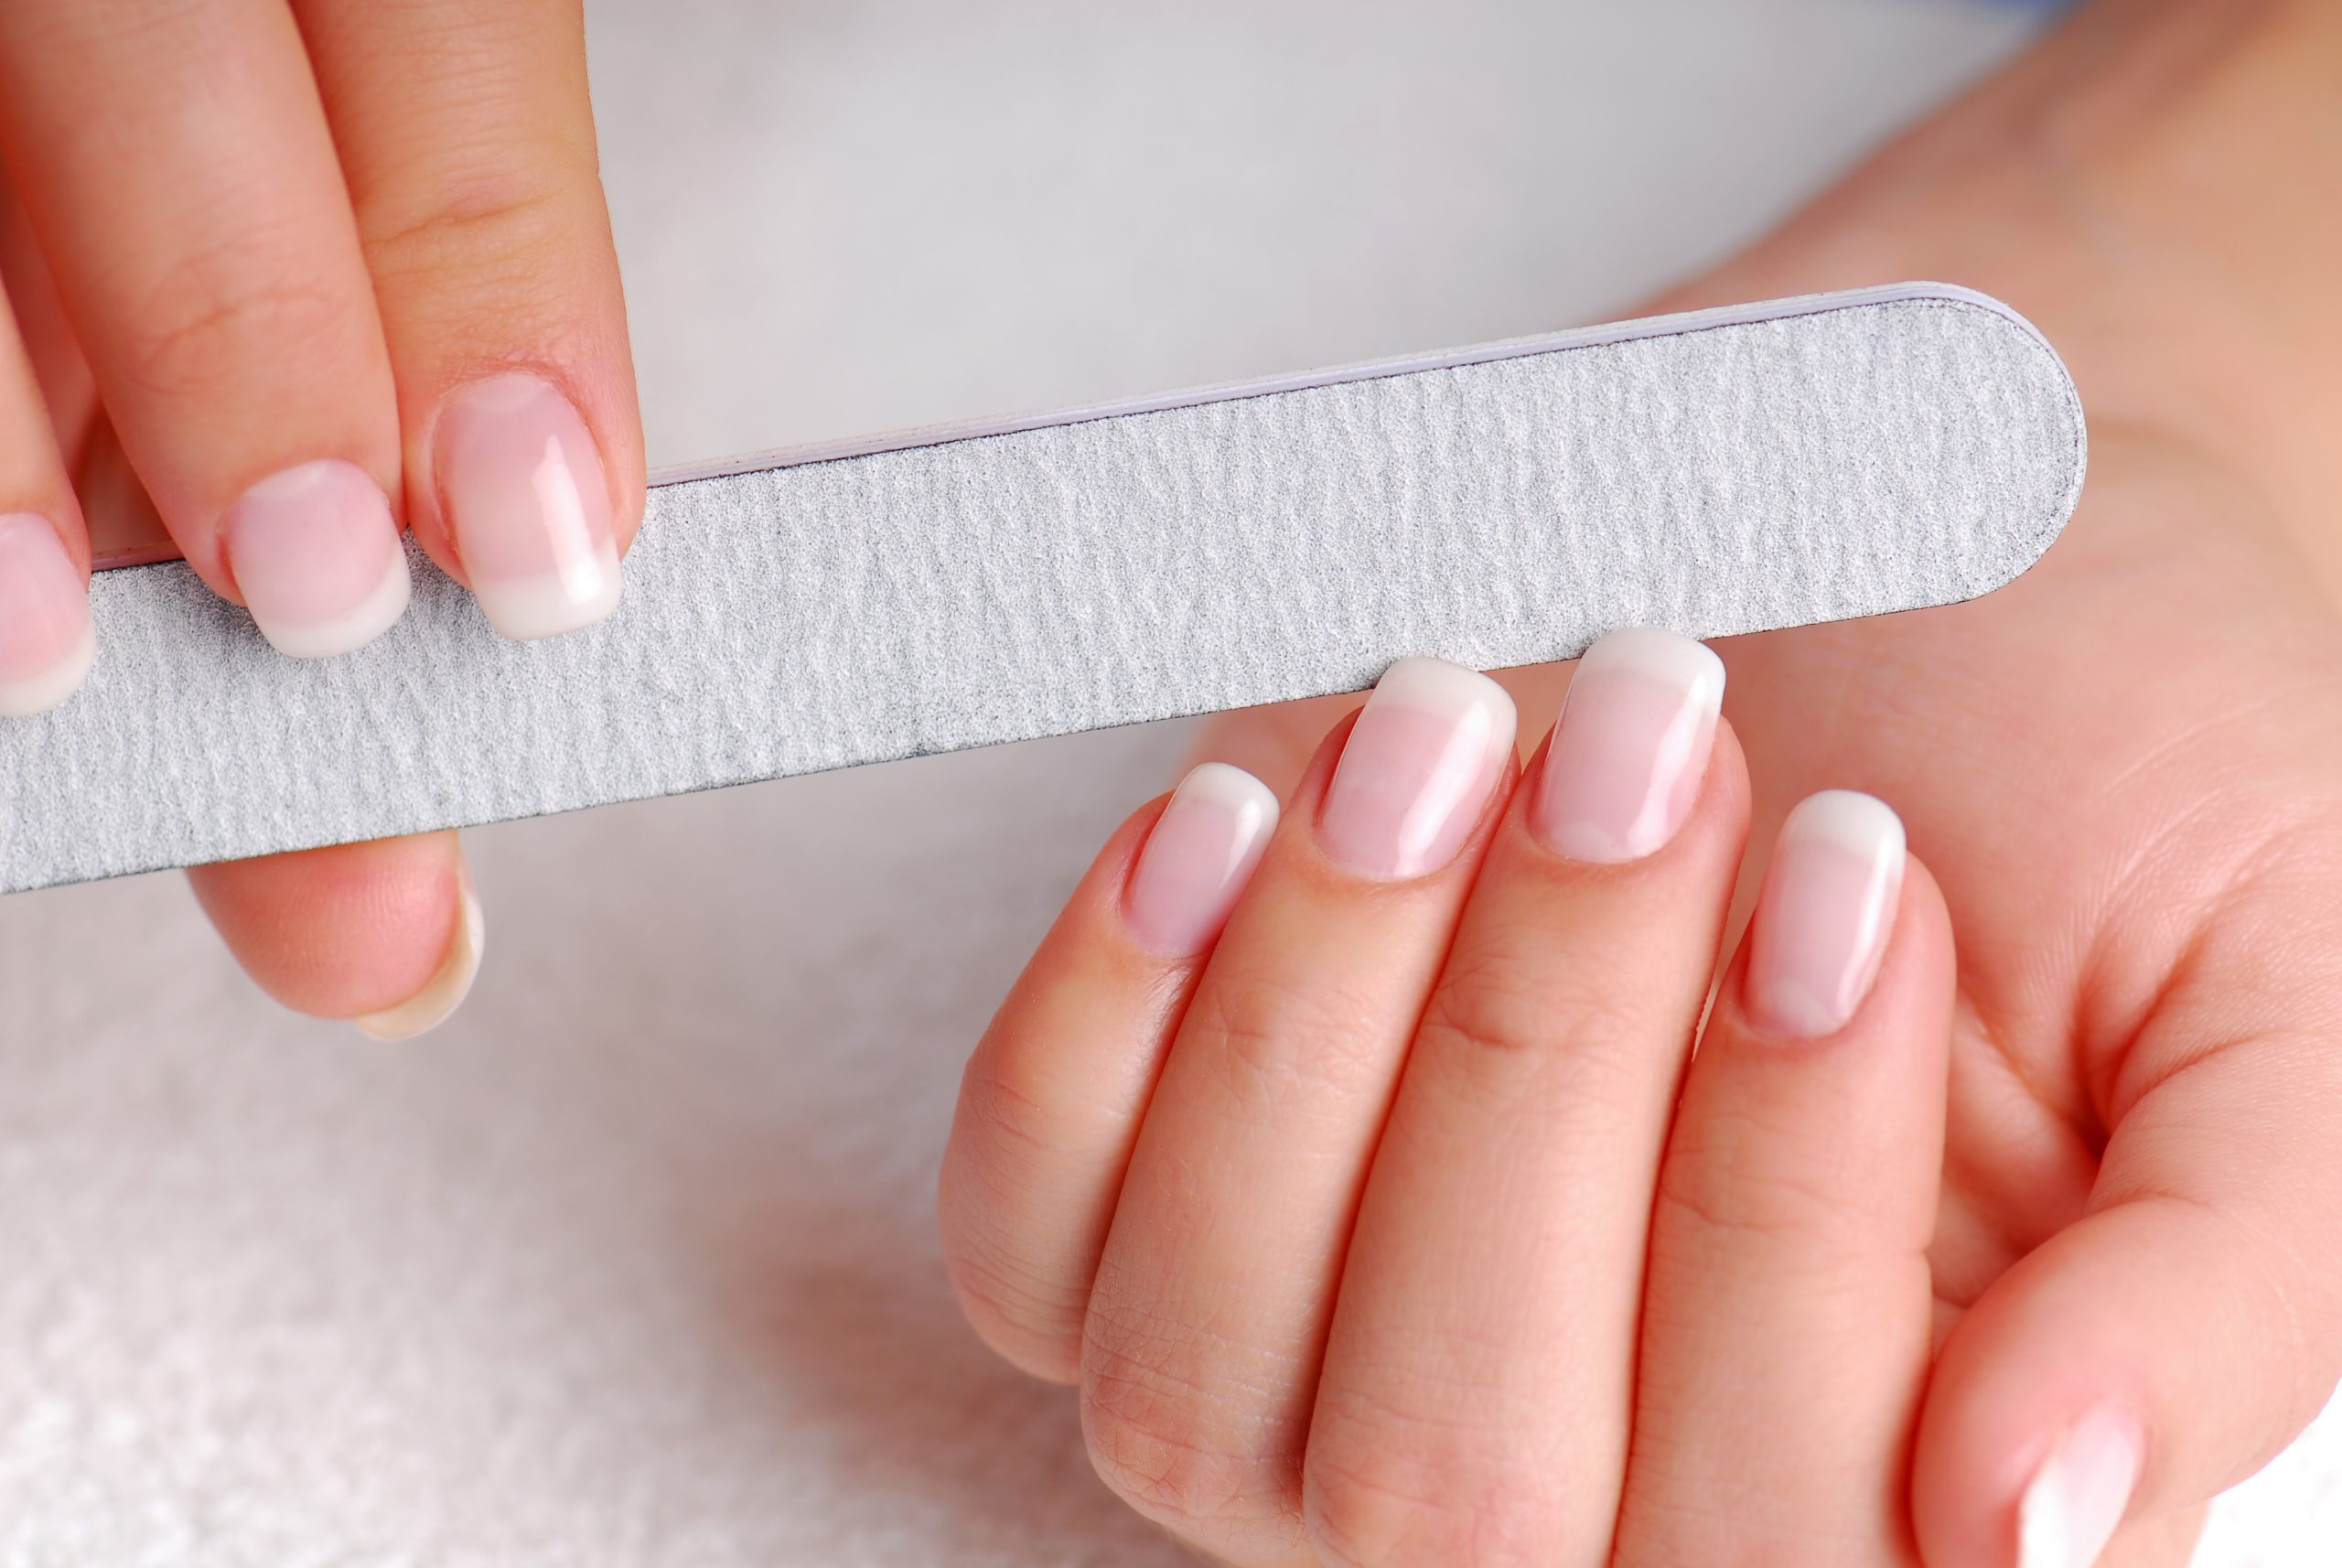 nails grow faster